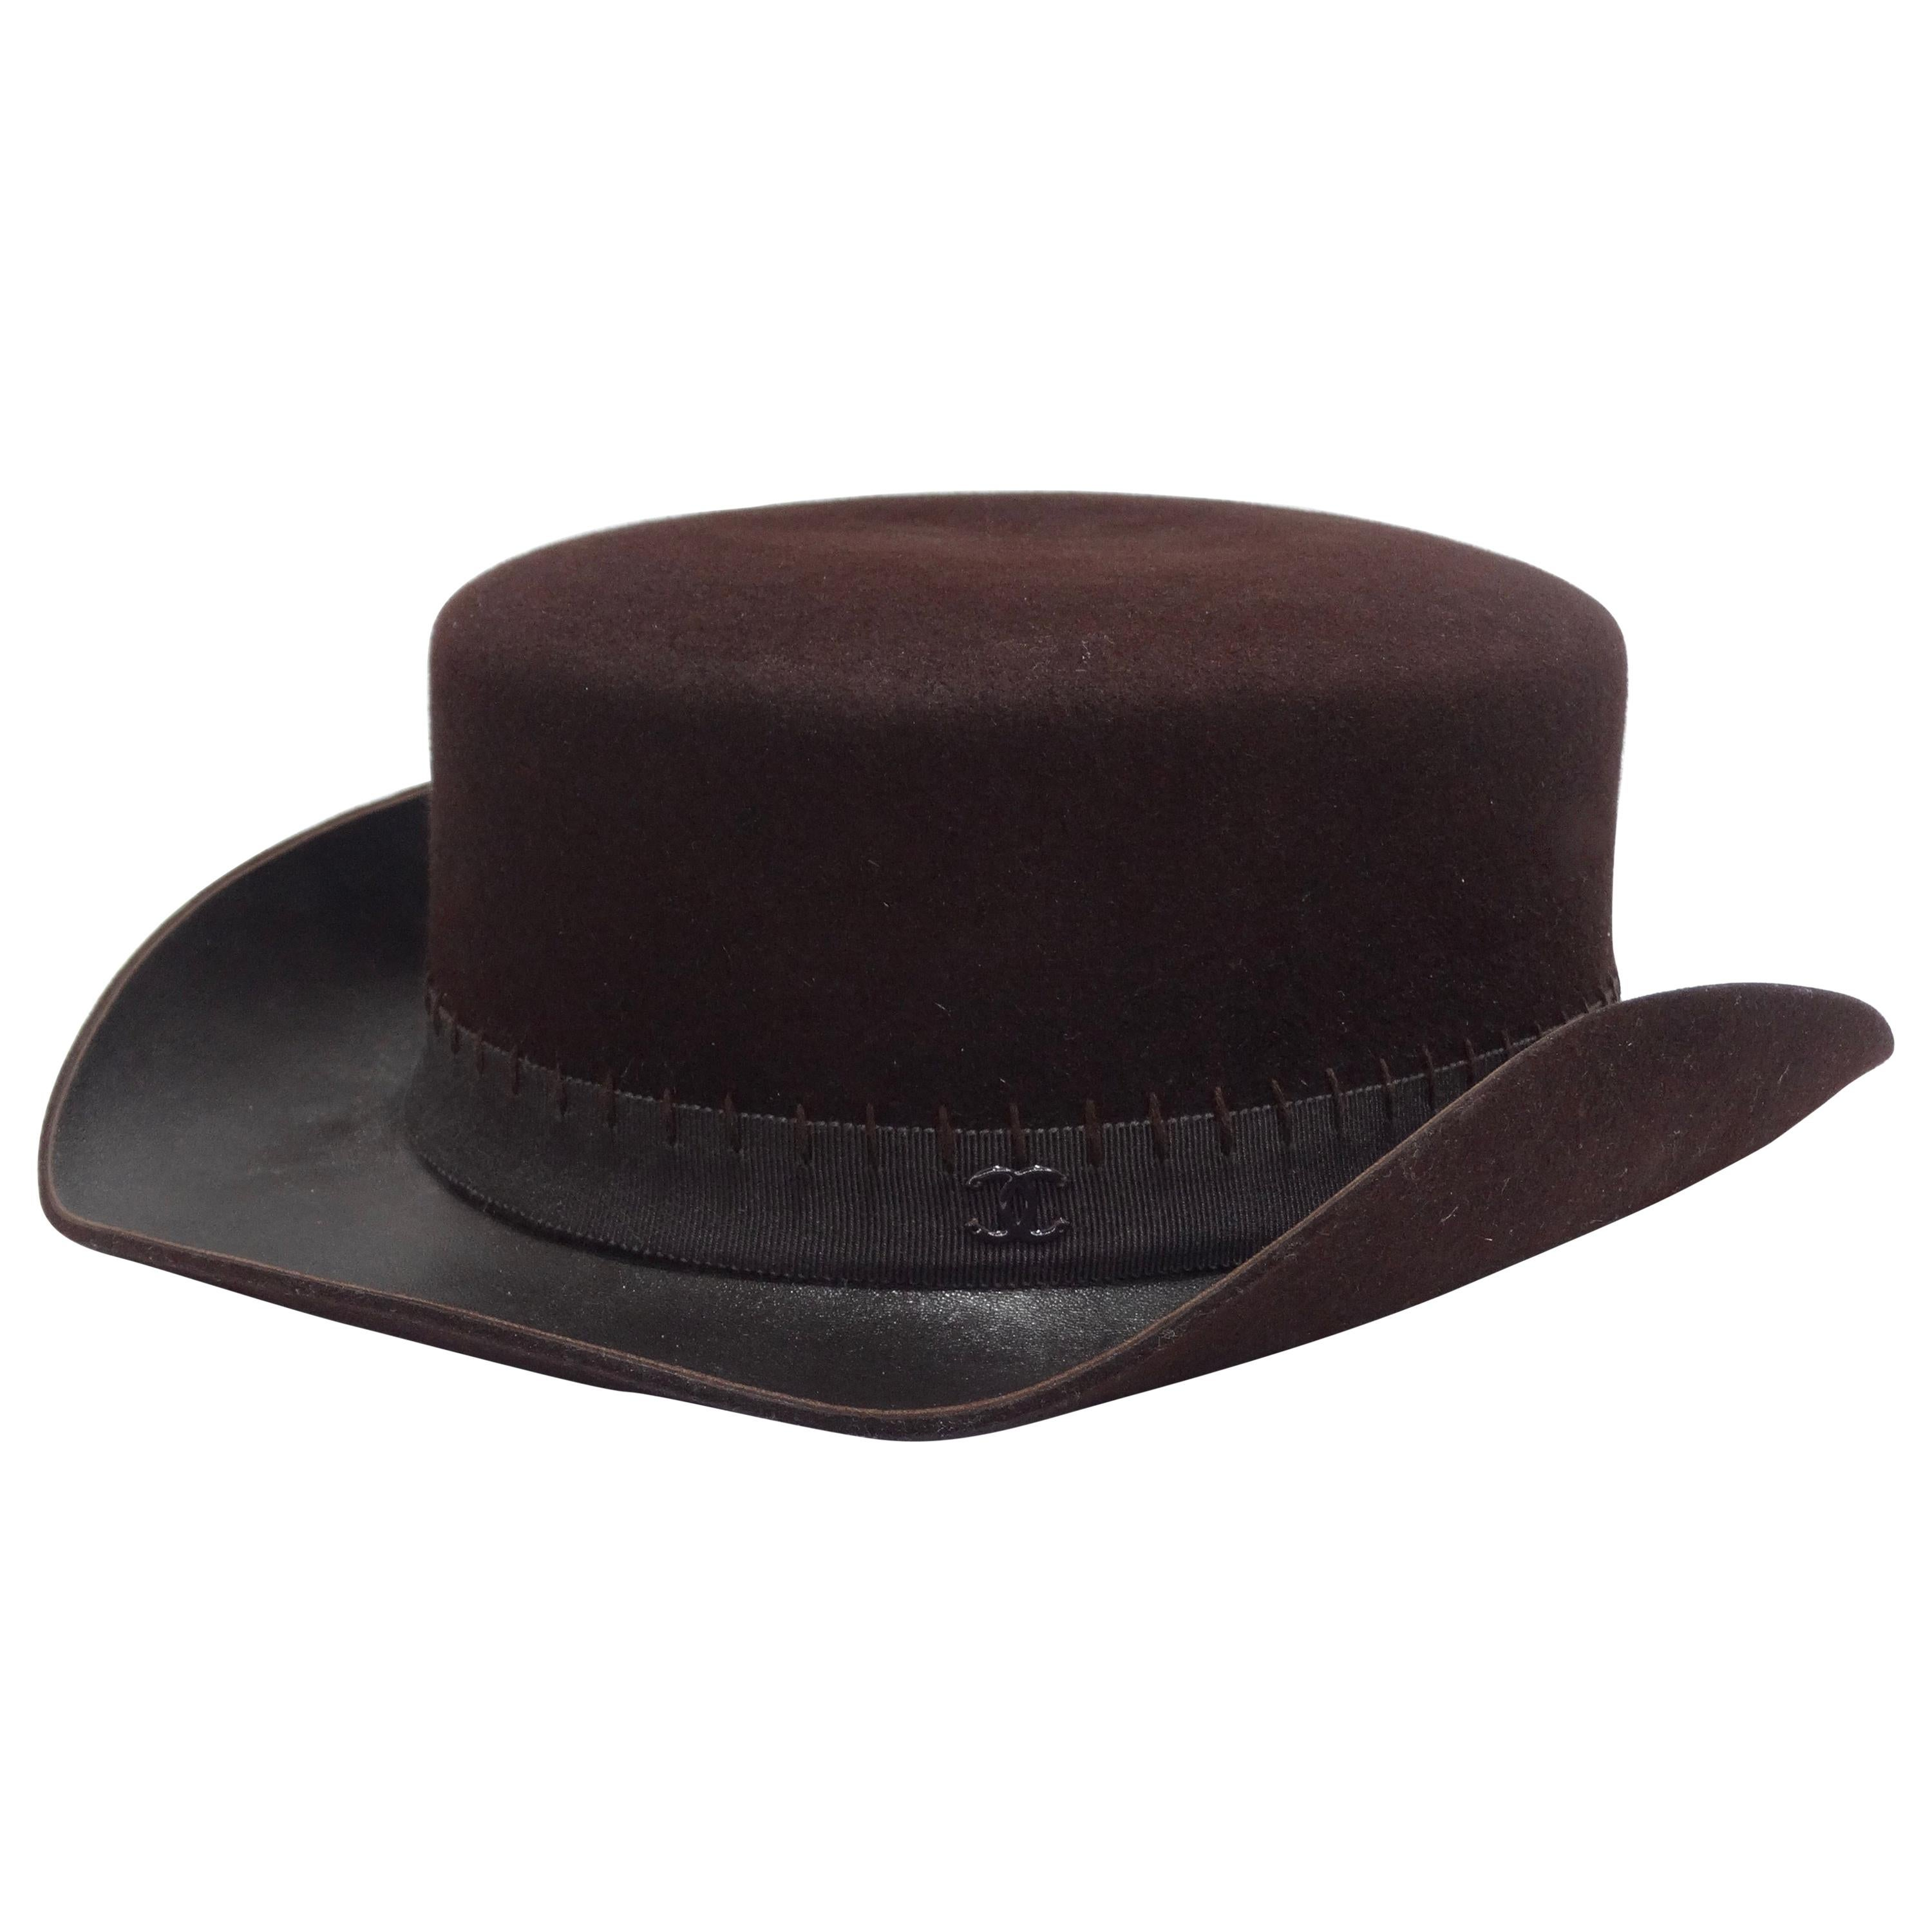 Chanel 2014 Runway Brown Western Hat